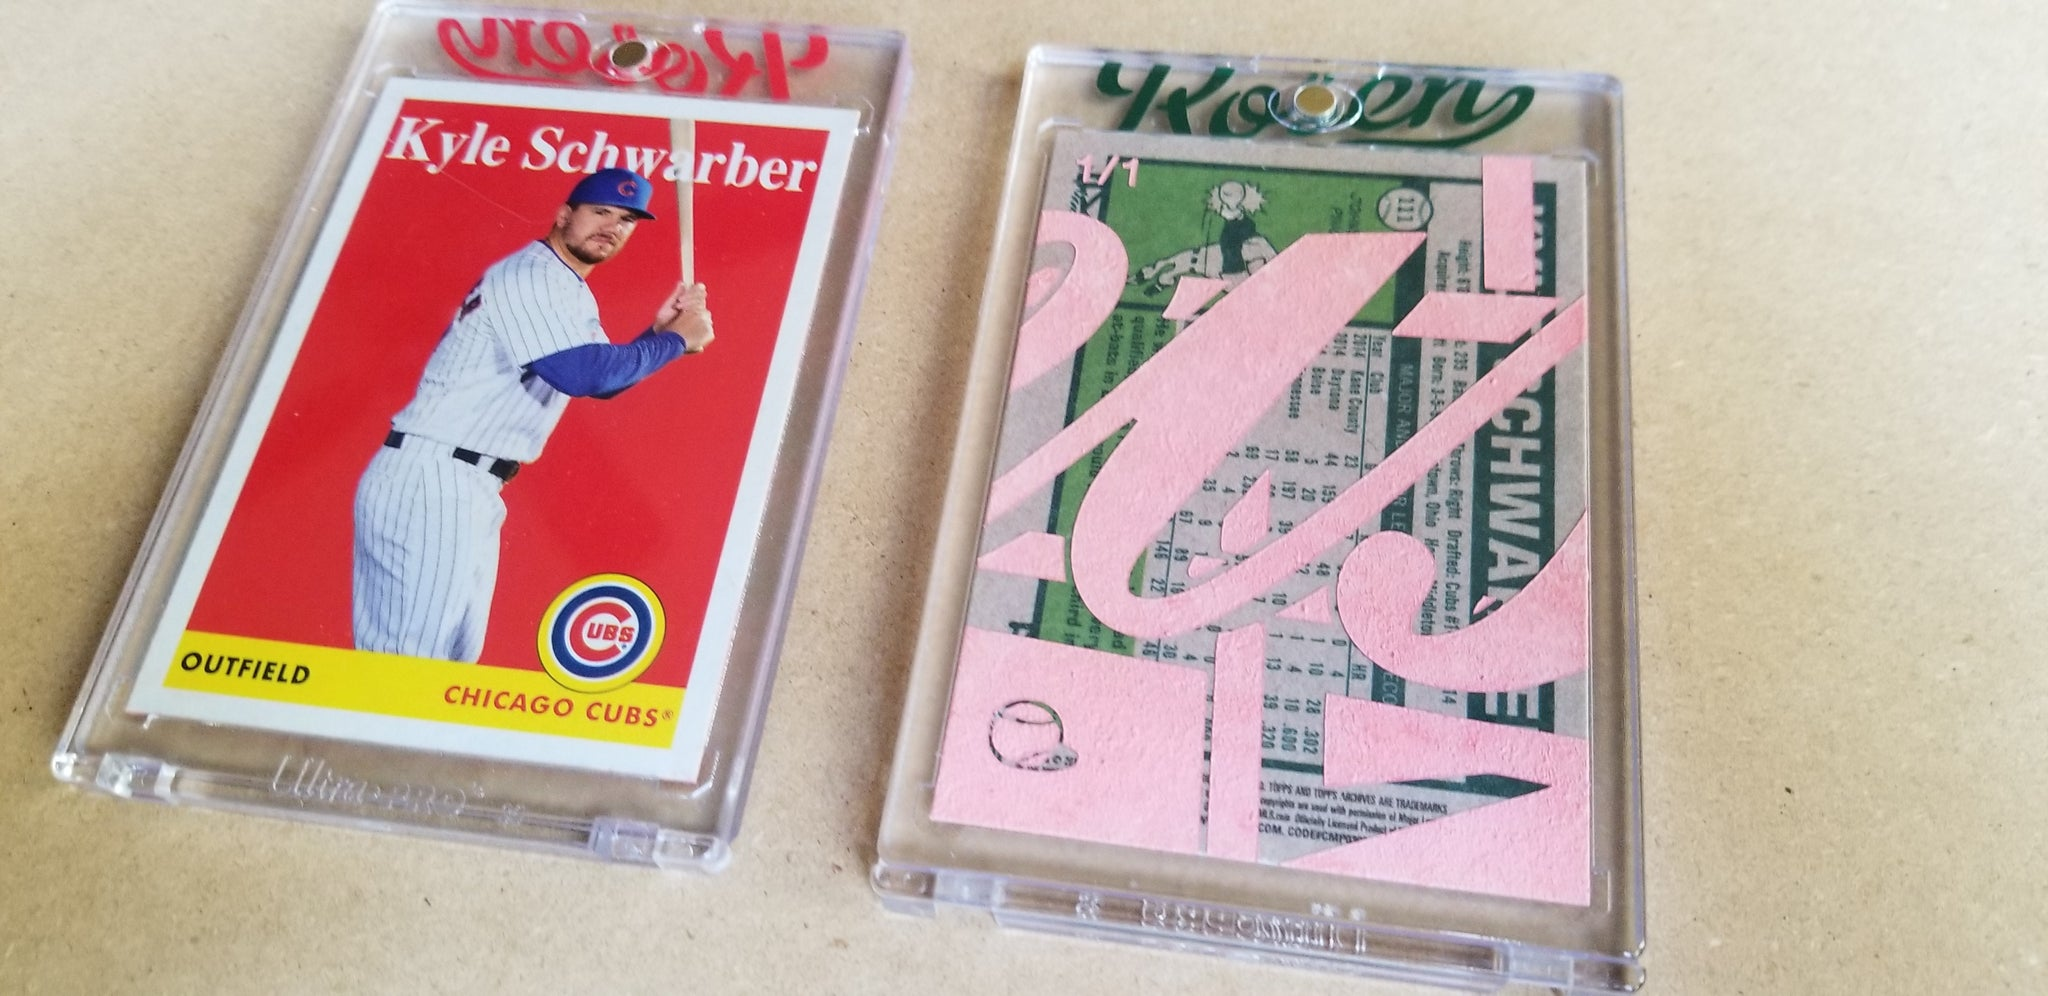 Baseball card art by Matthew Lee Rosen (aka Matthew Rosen) - Schwarber Moonshot